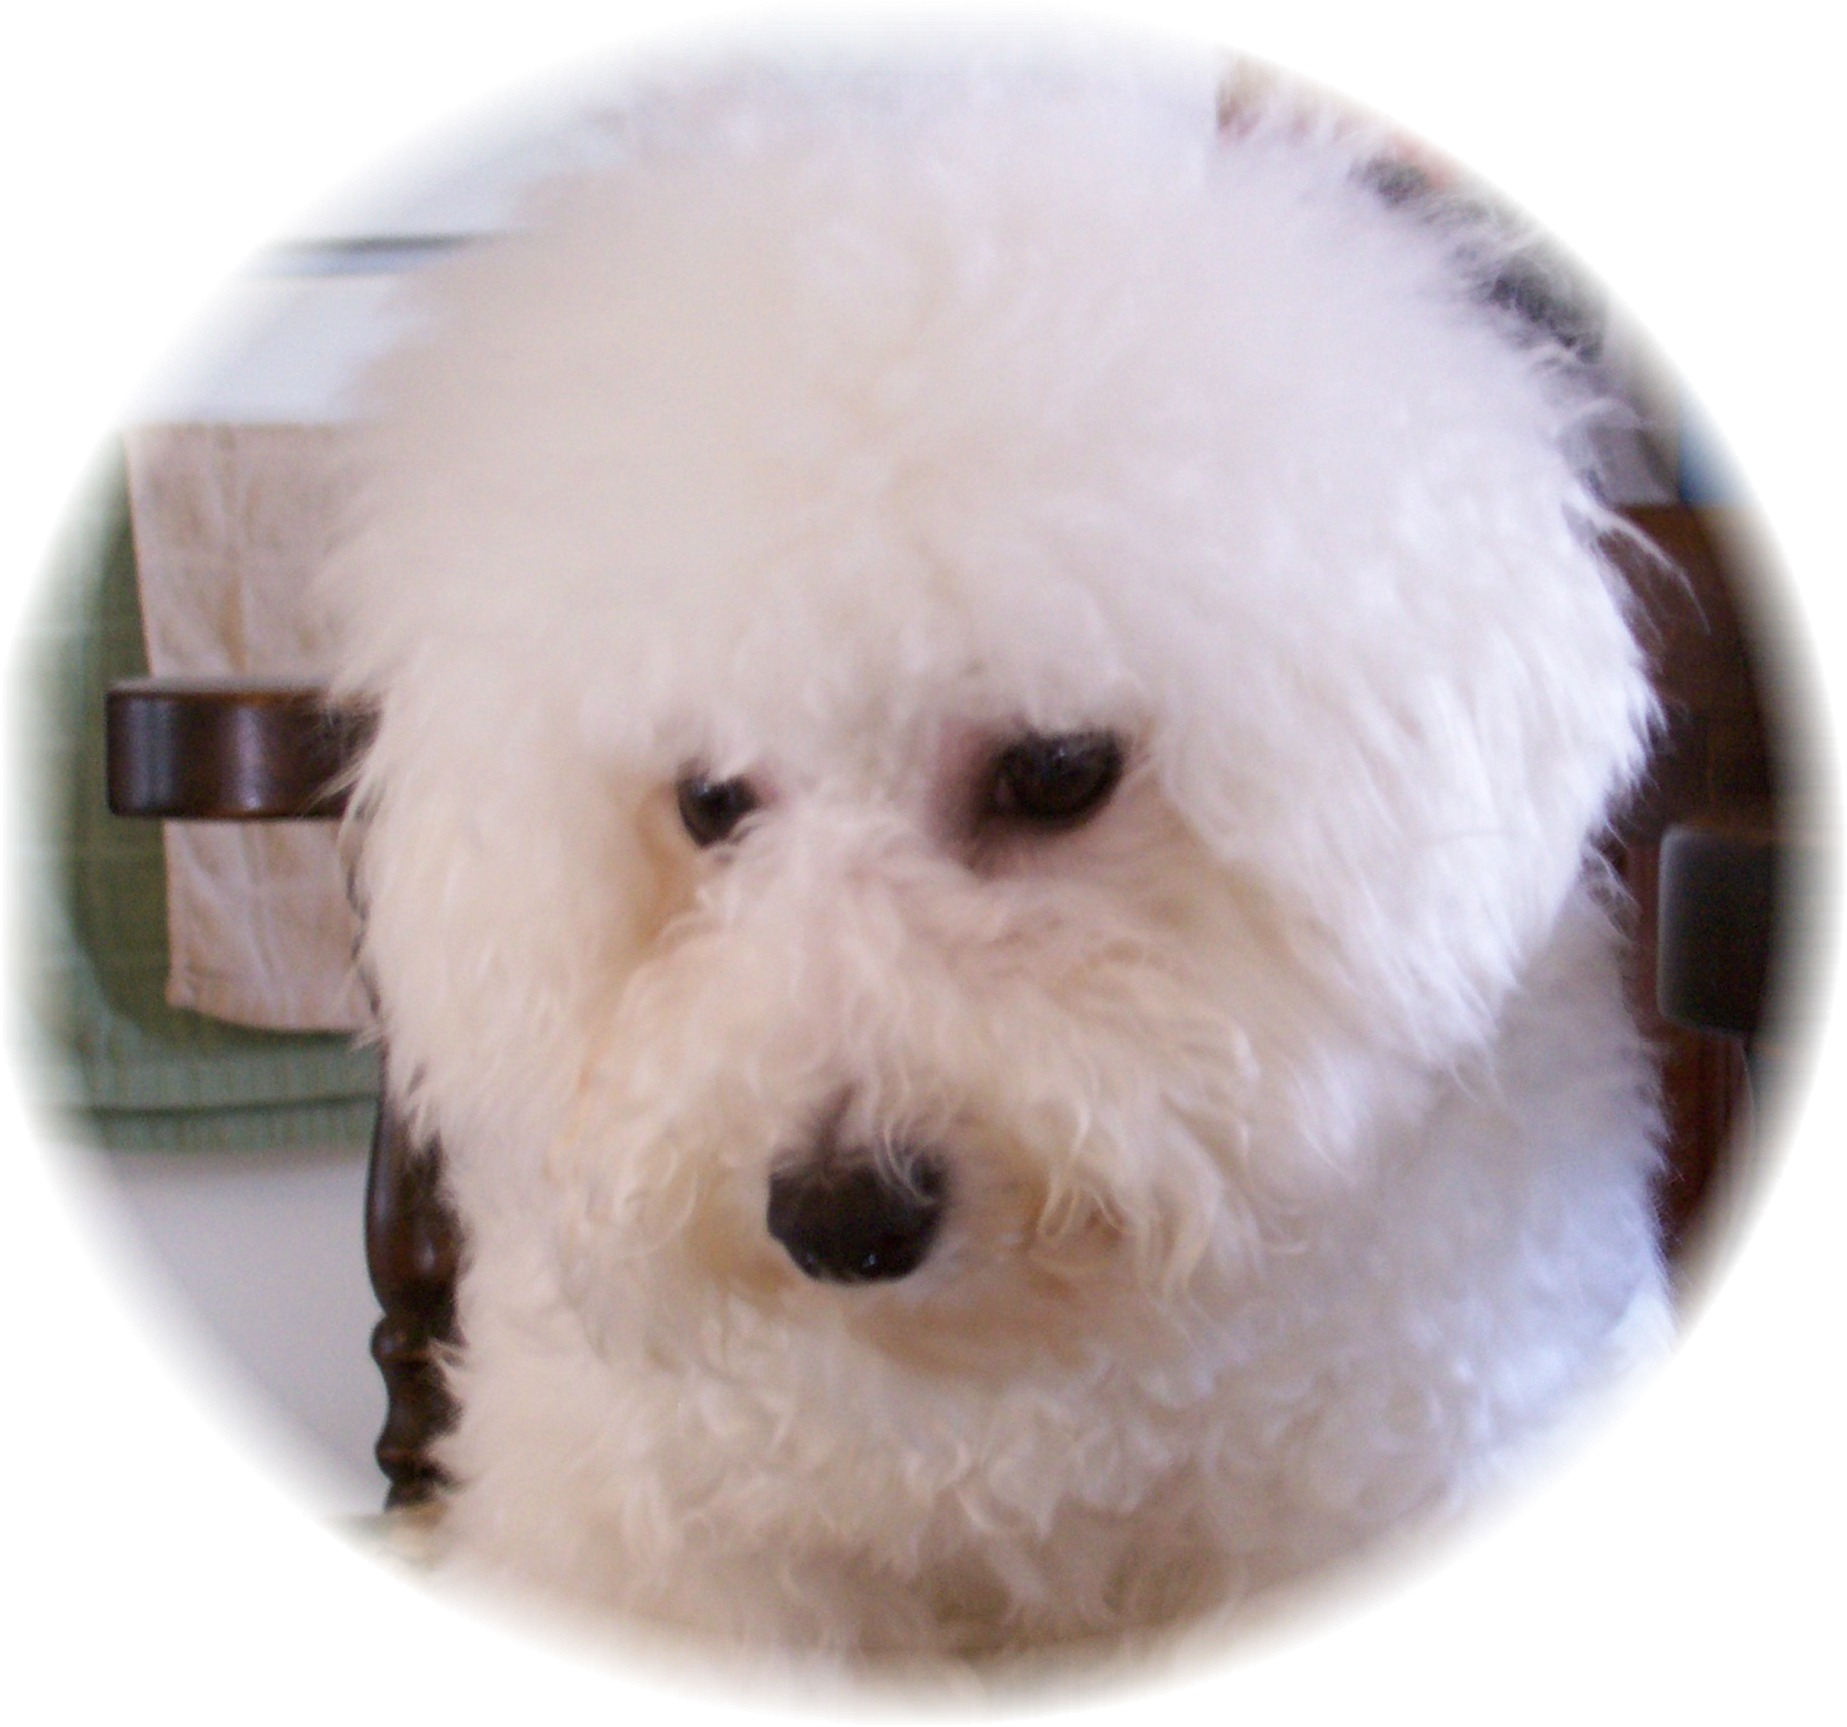 Champion sired Bichon Frise female